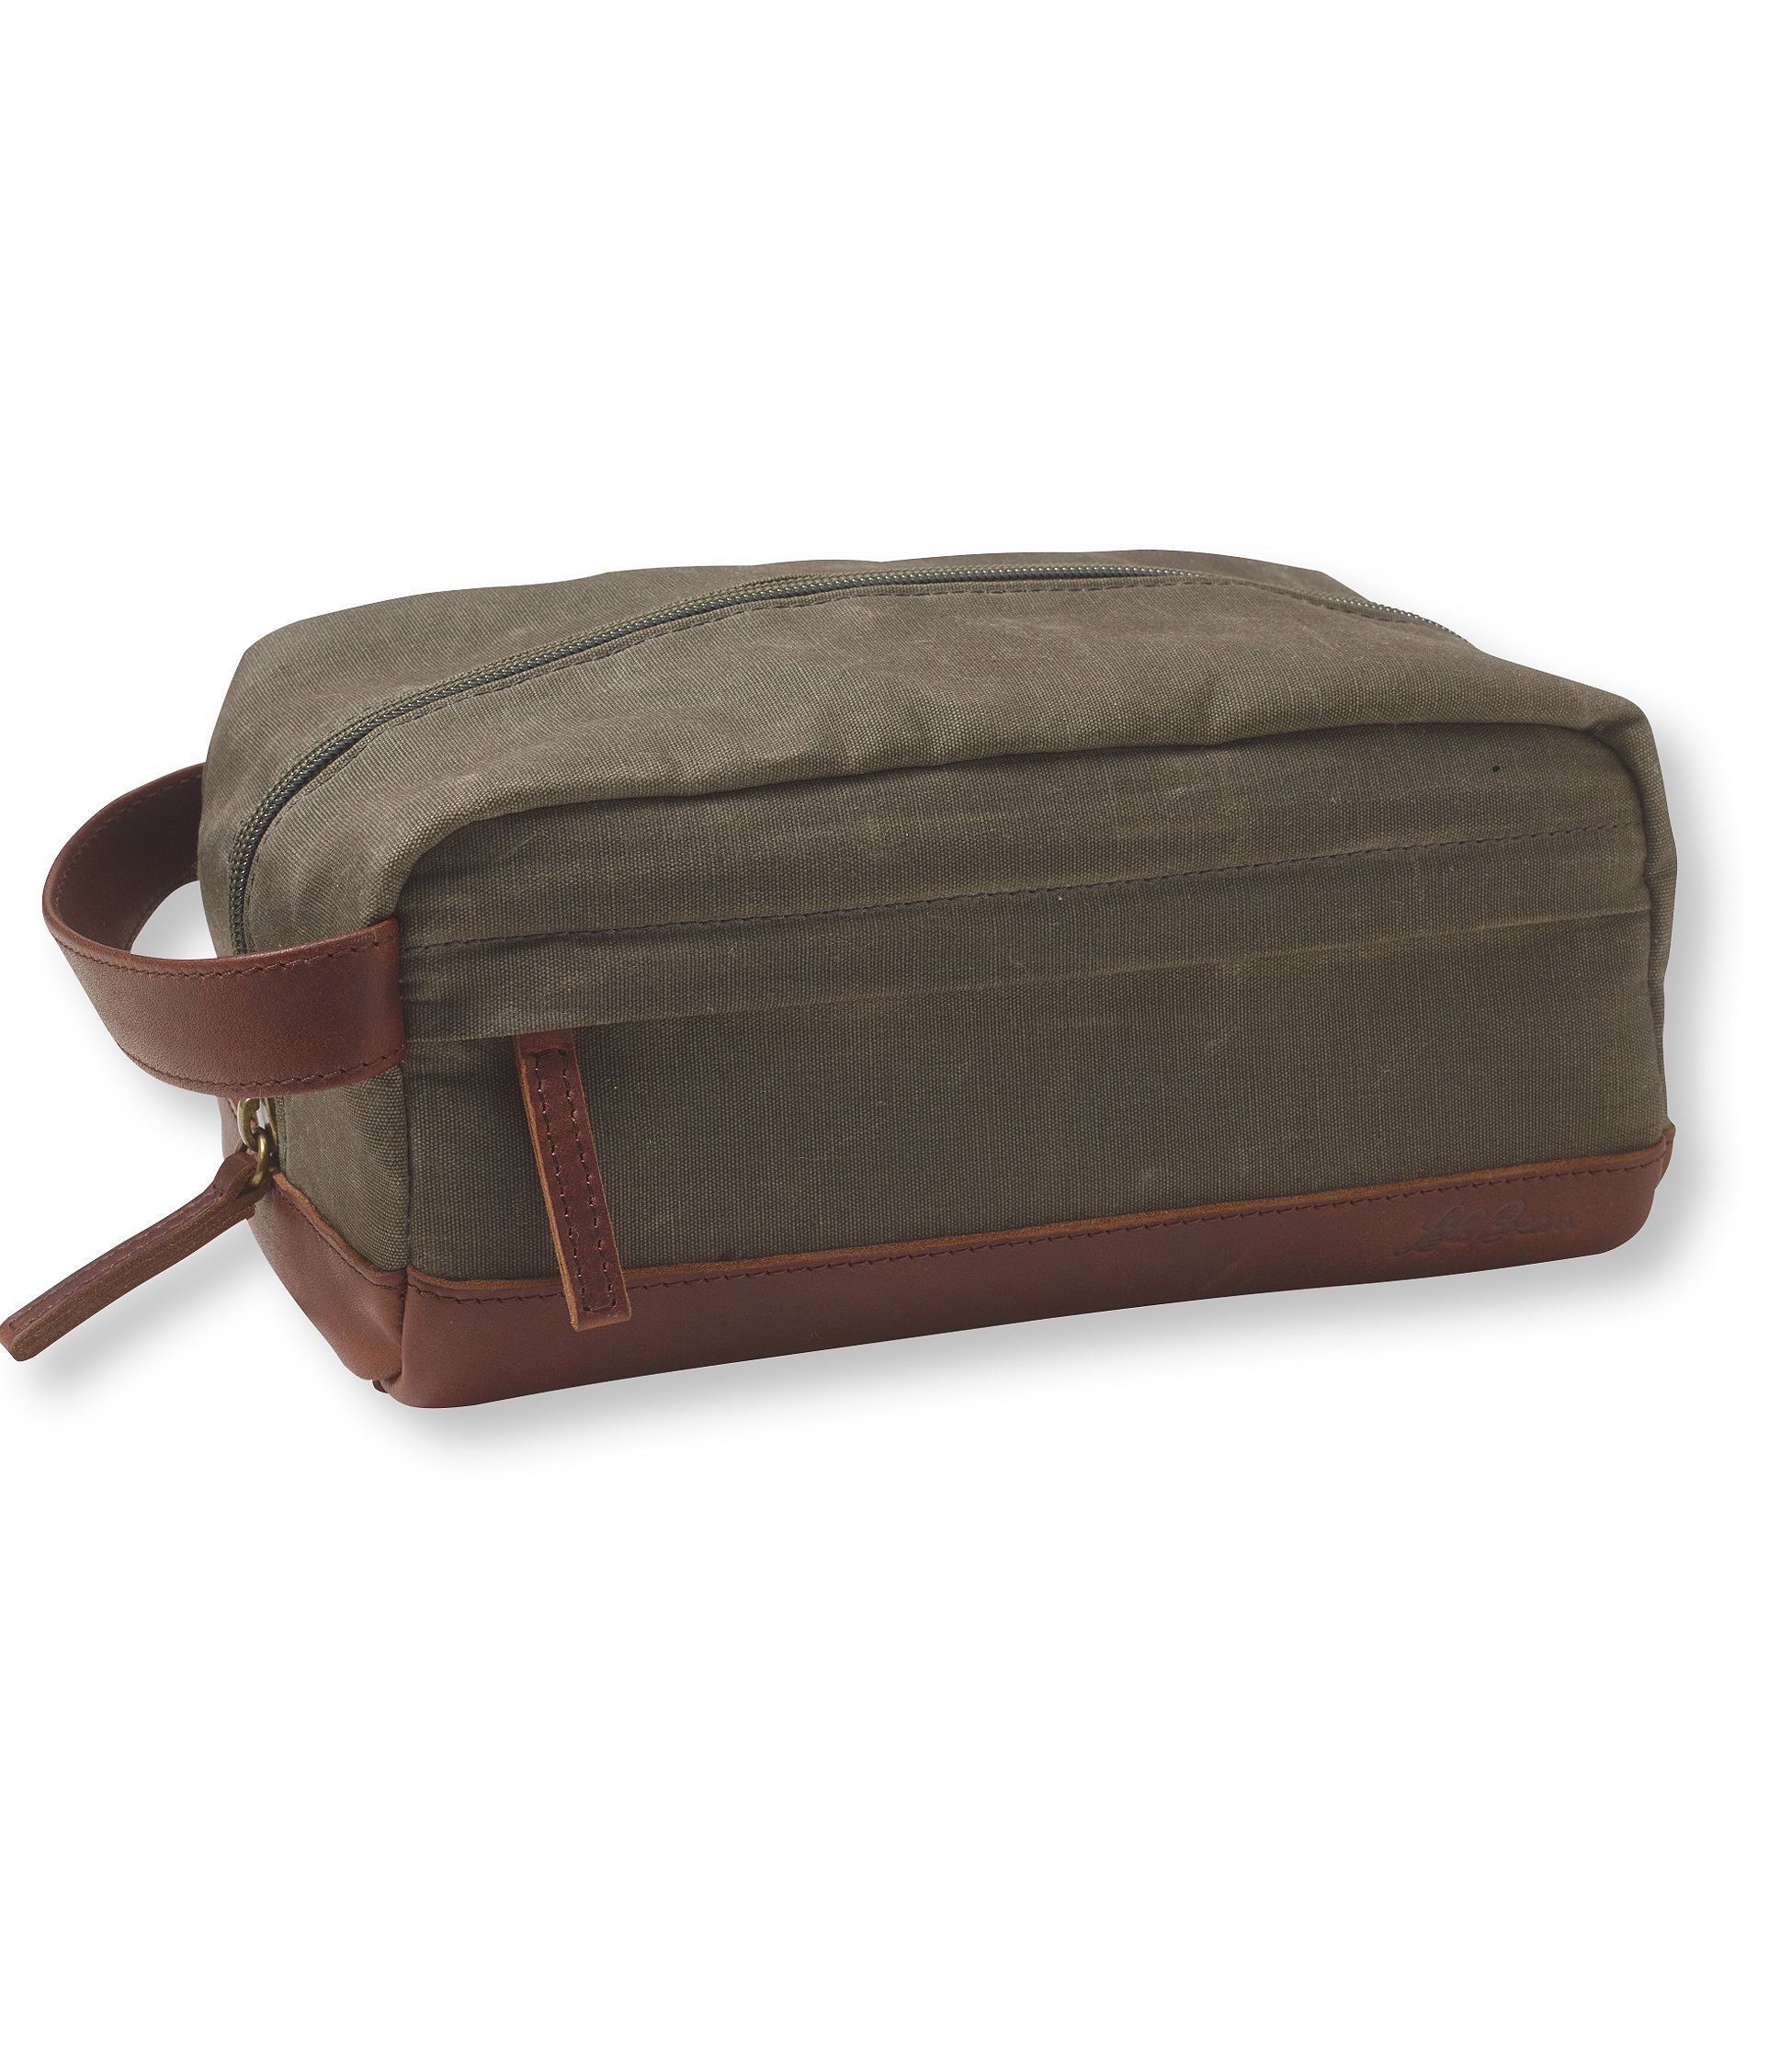 Heritage Waxed-Canvas Toiletry Kit  5ed6c1c441c69